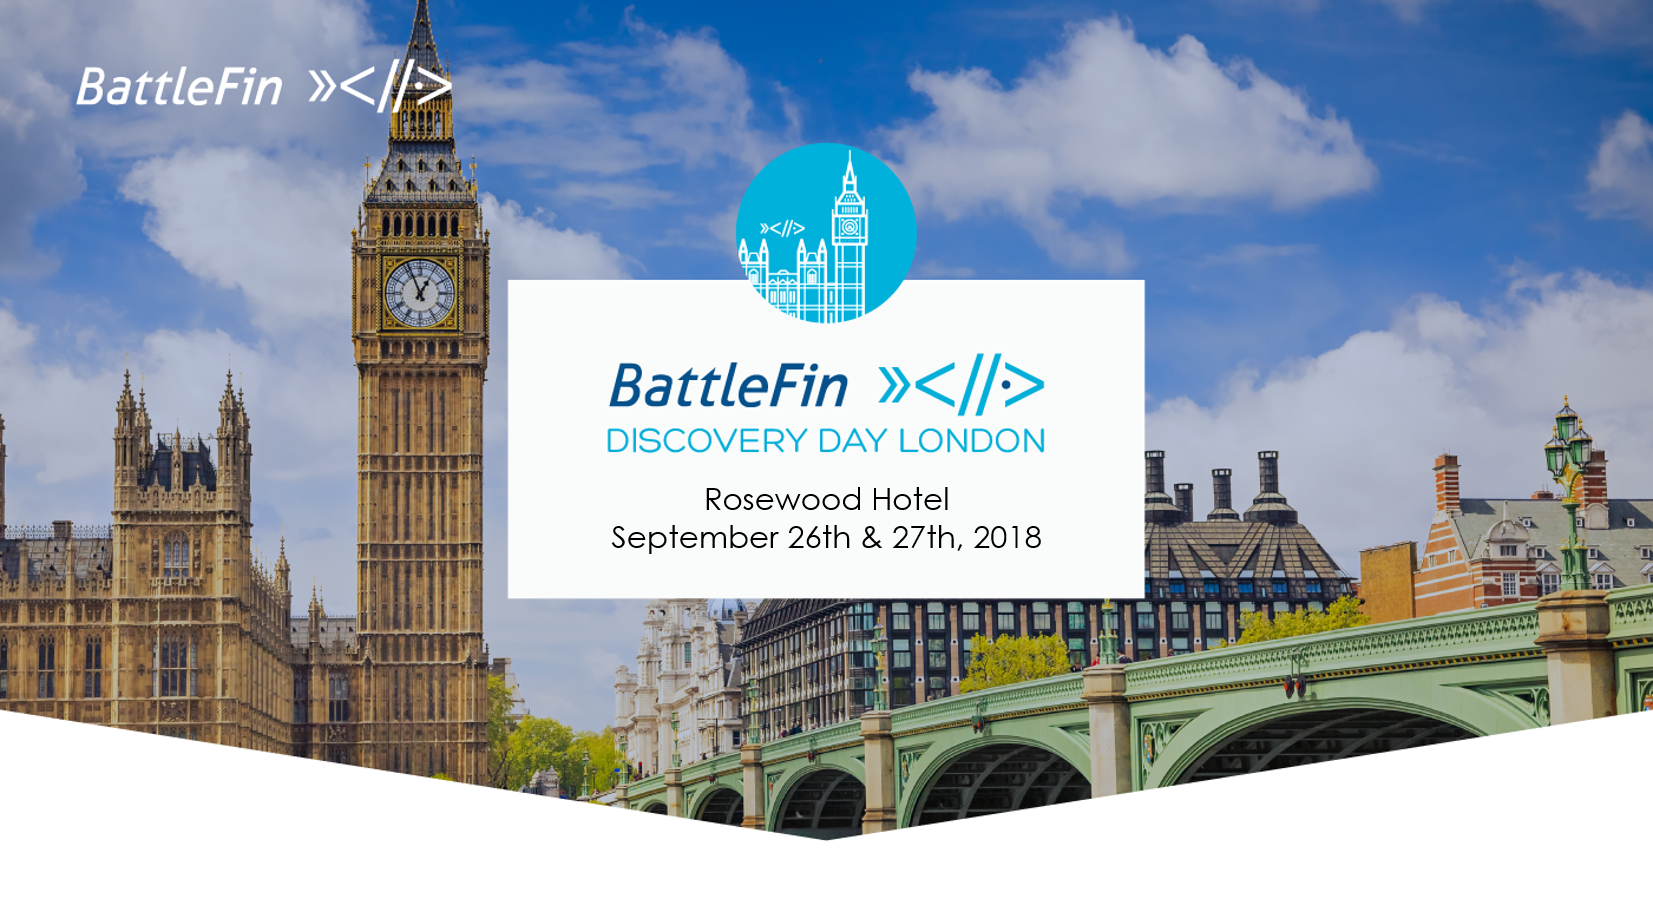 Battlefin London 2018